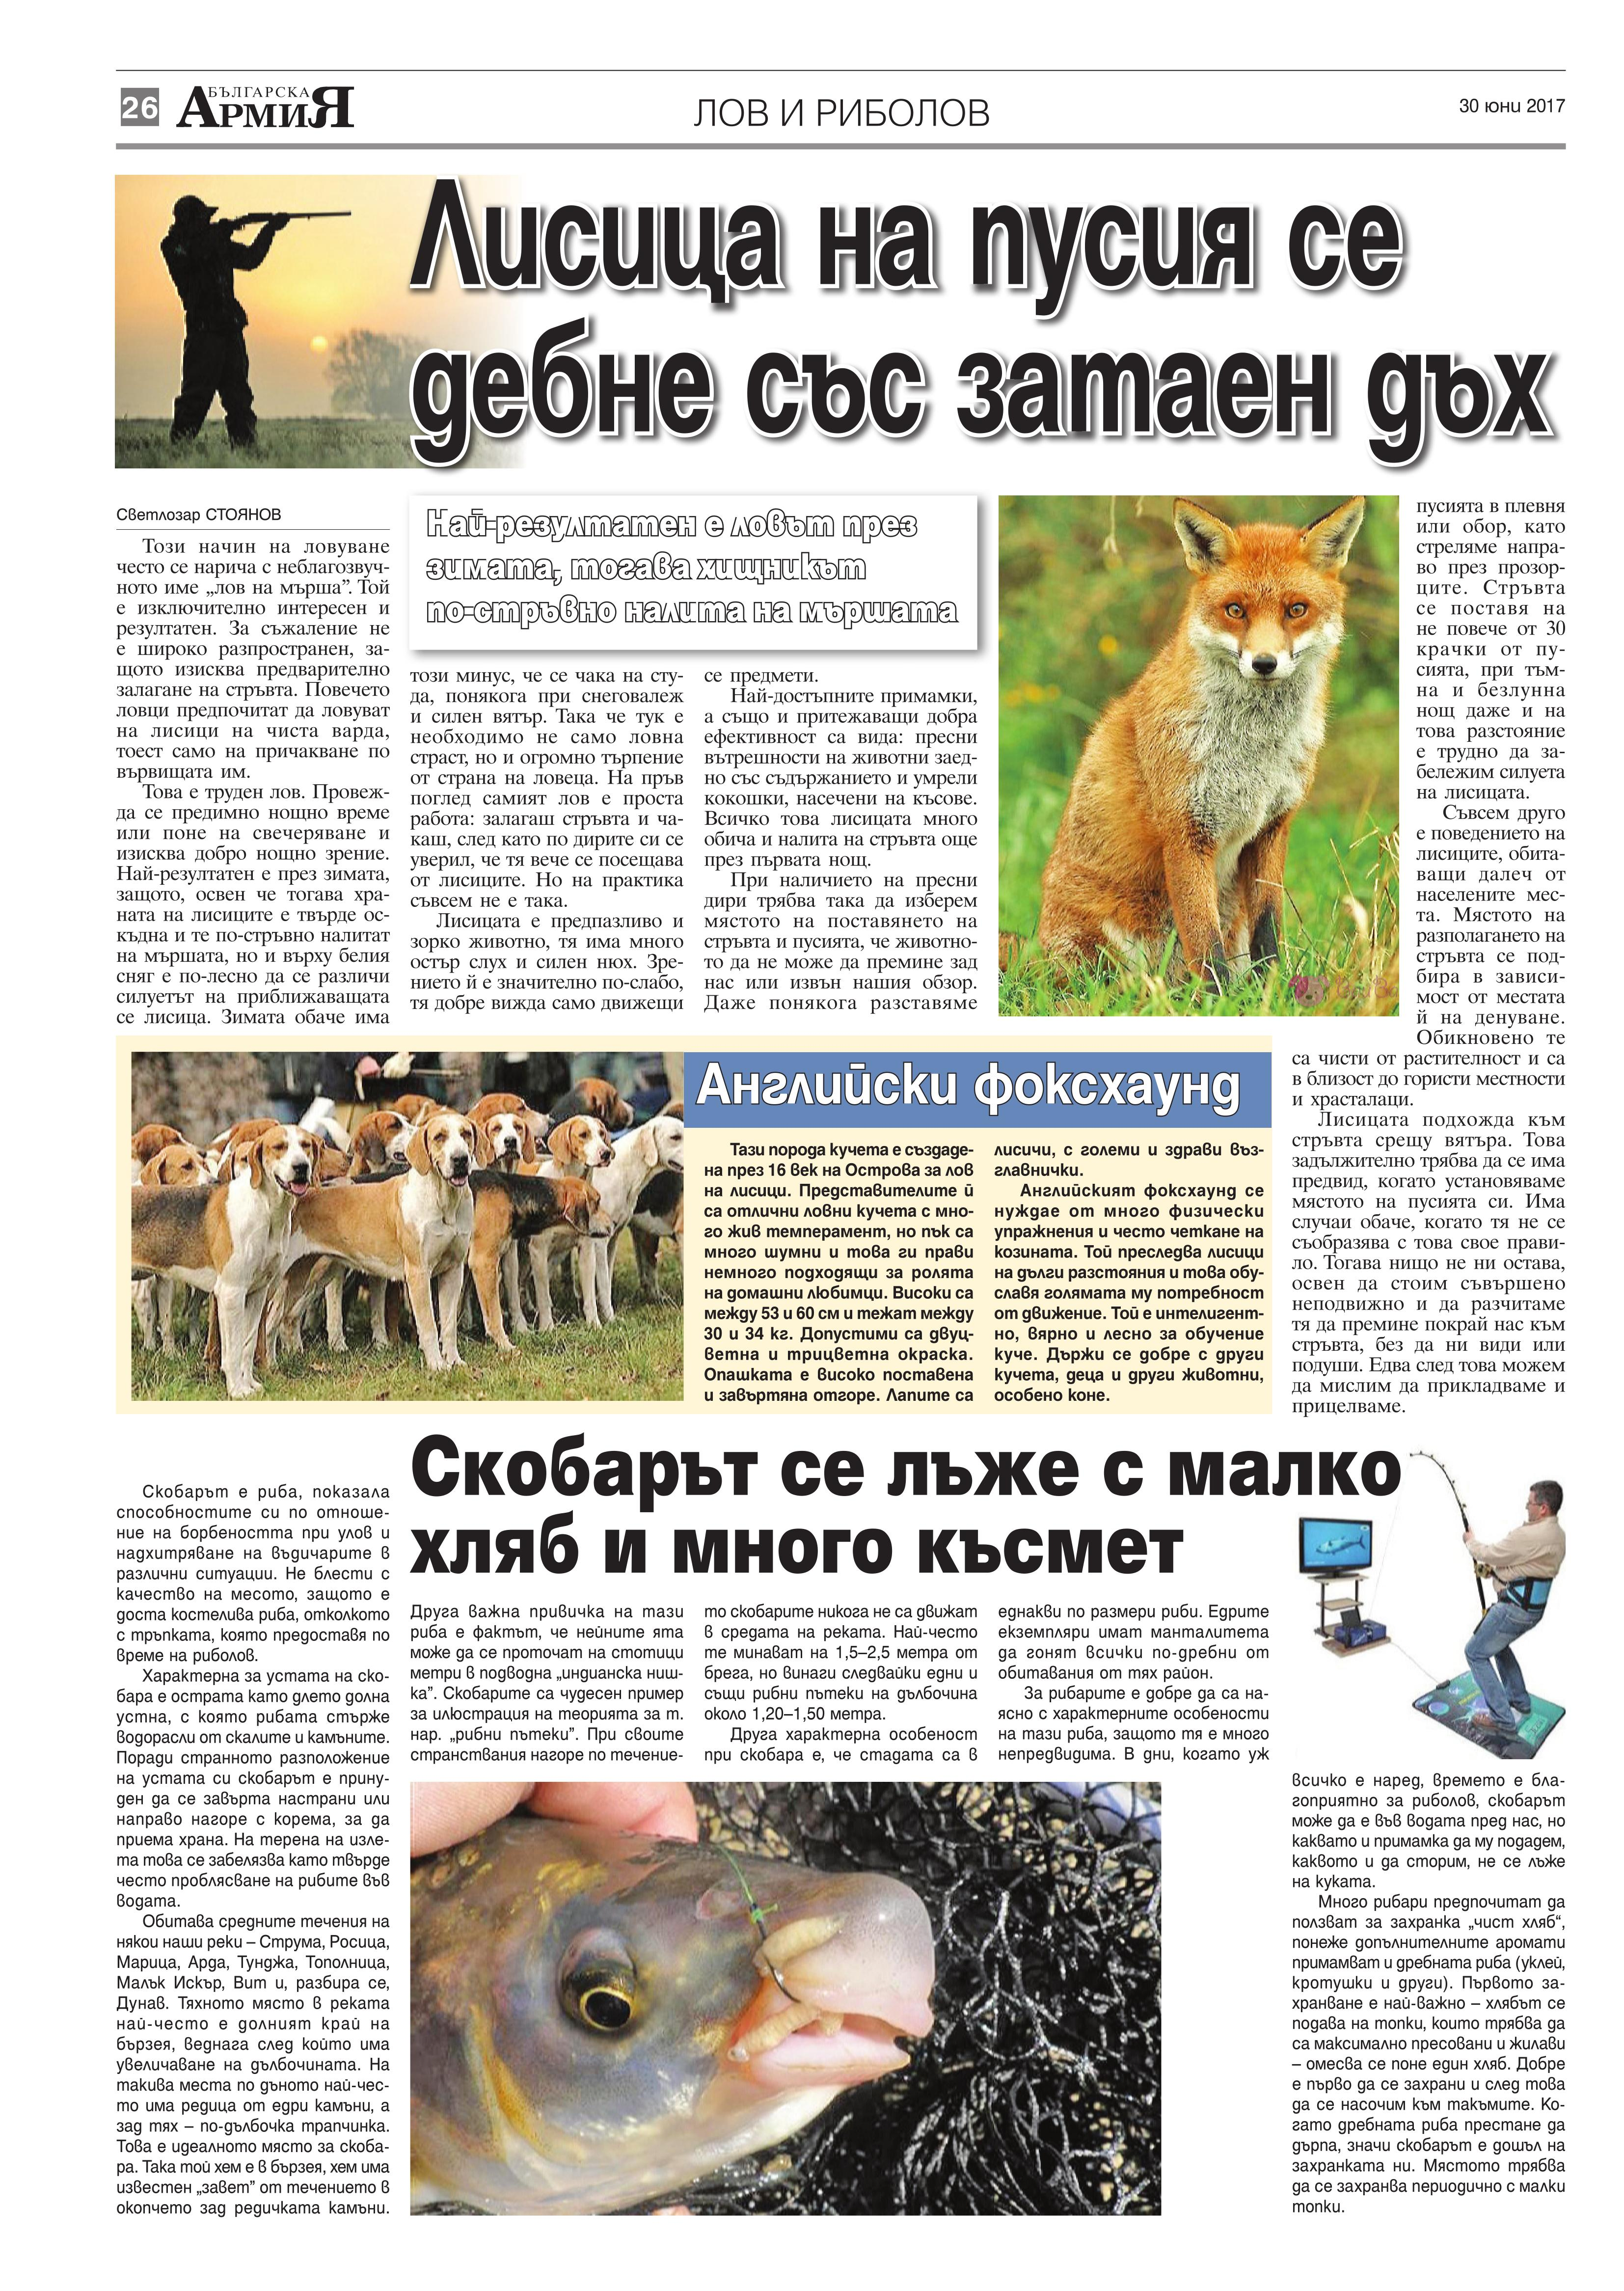 https://www.armymedia.bg/wp-content/uploads/2015/06/26.page1_-20.jpg